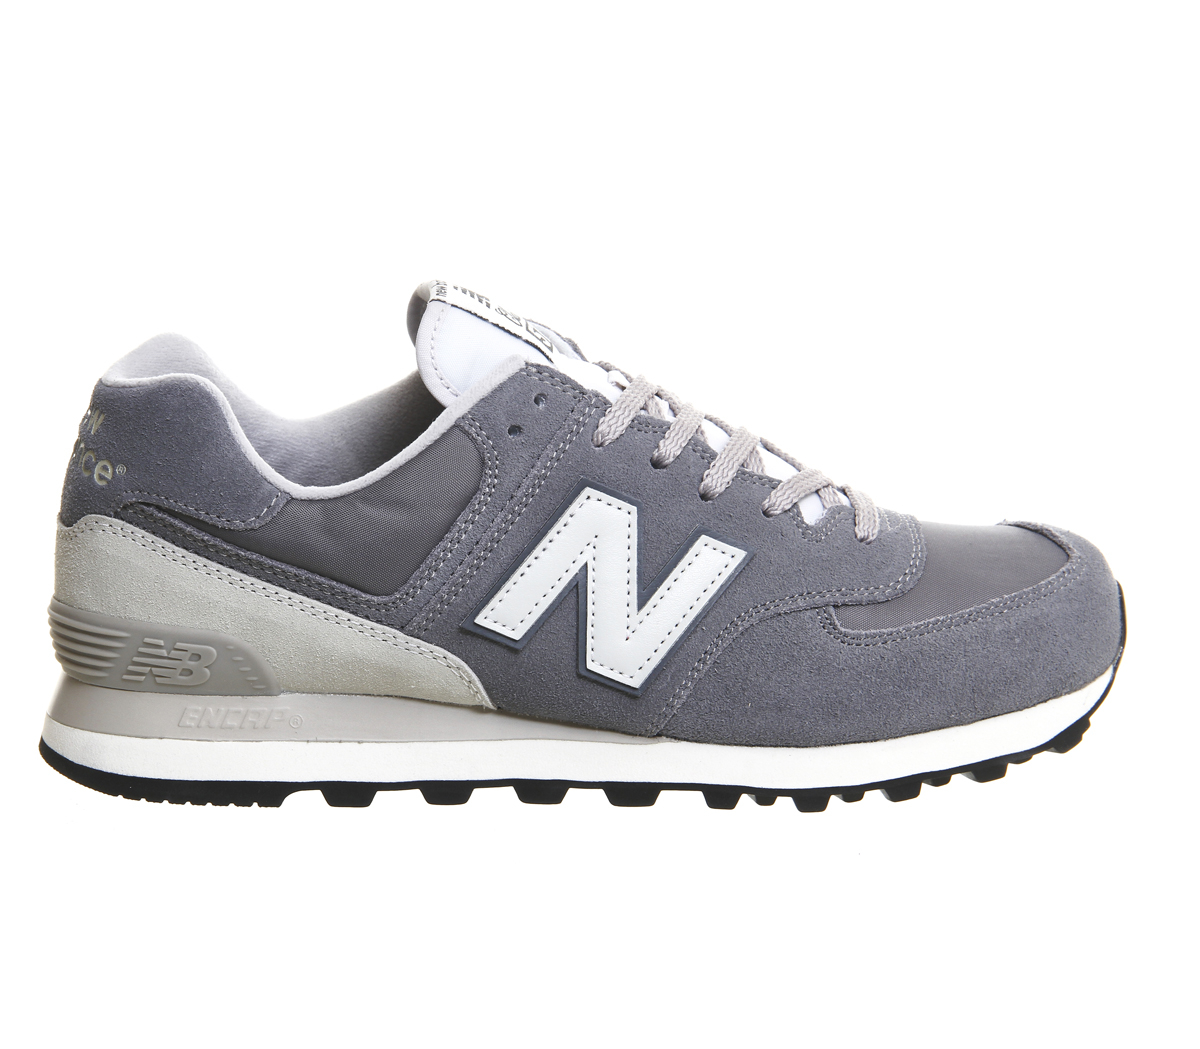 new balance m574 trainers in gray grey save 36 lyst. Black Bedroom Furniture Sets. Home Design Ideas